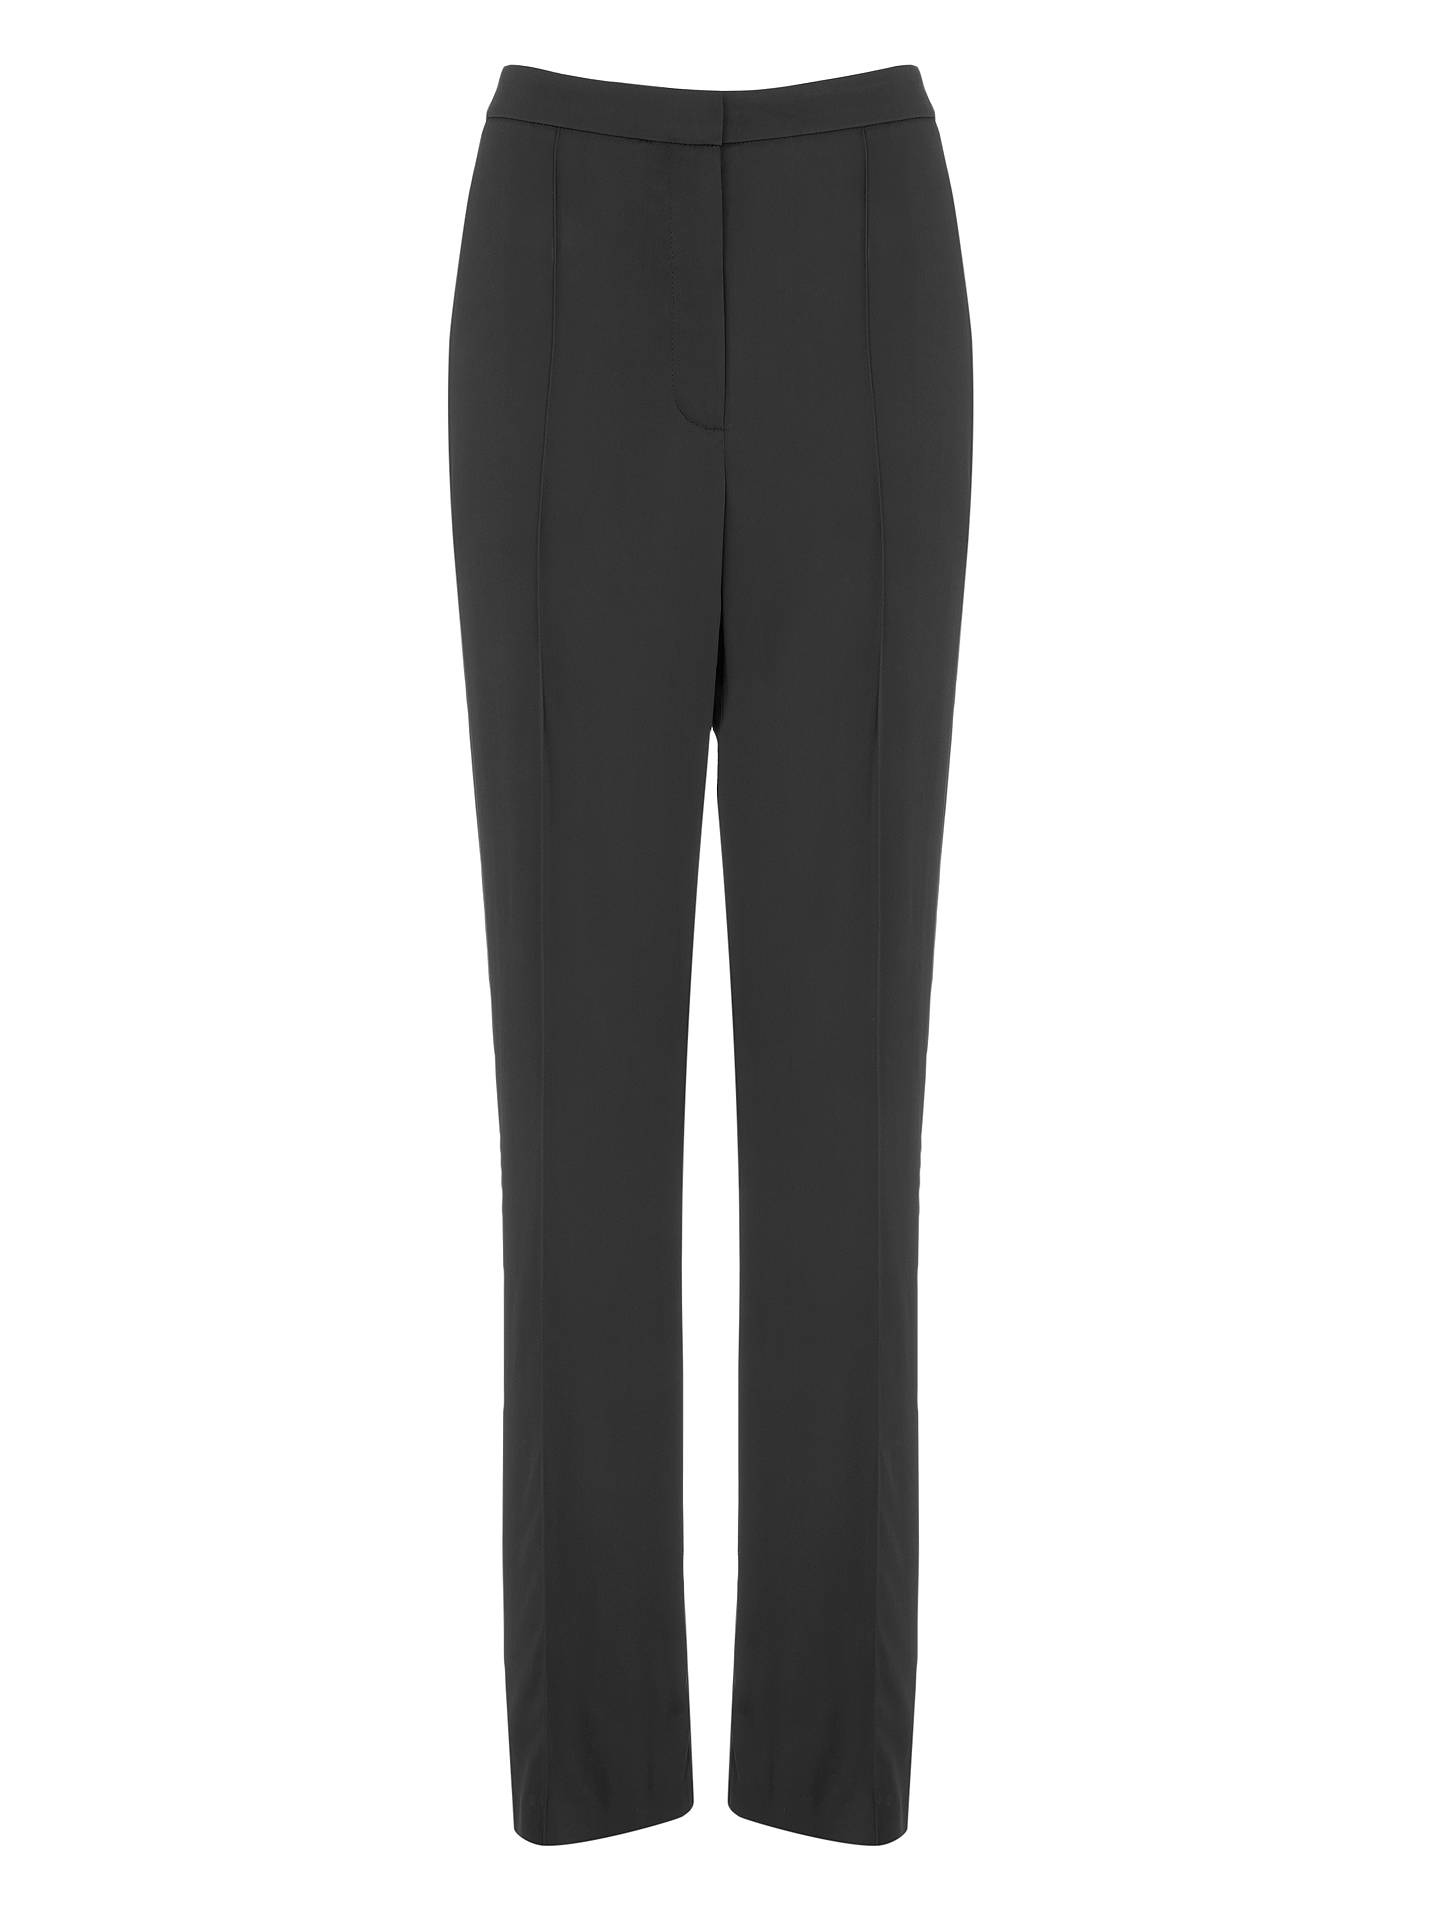 BuyModern Rarity Satin Trousers, Charcoal, 8 Online at johnlewis.com